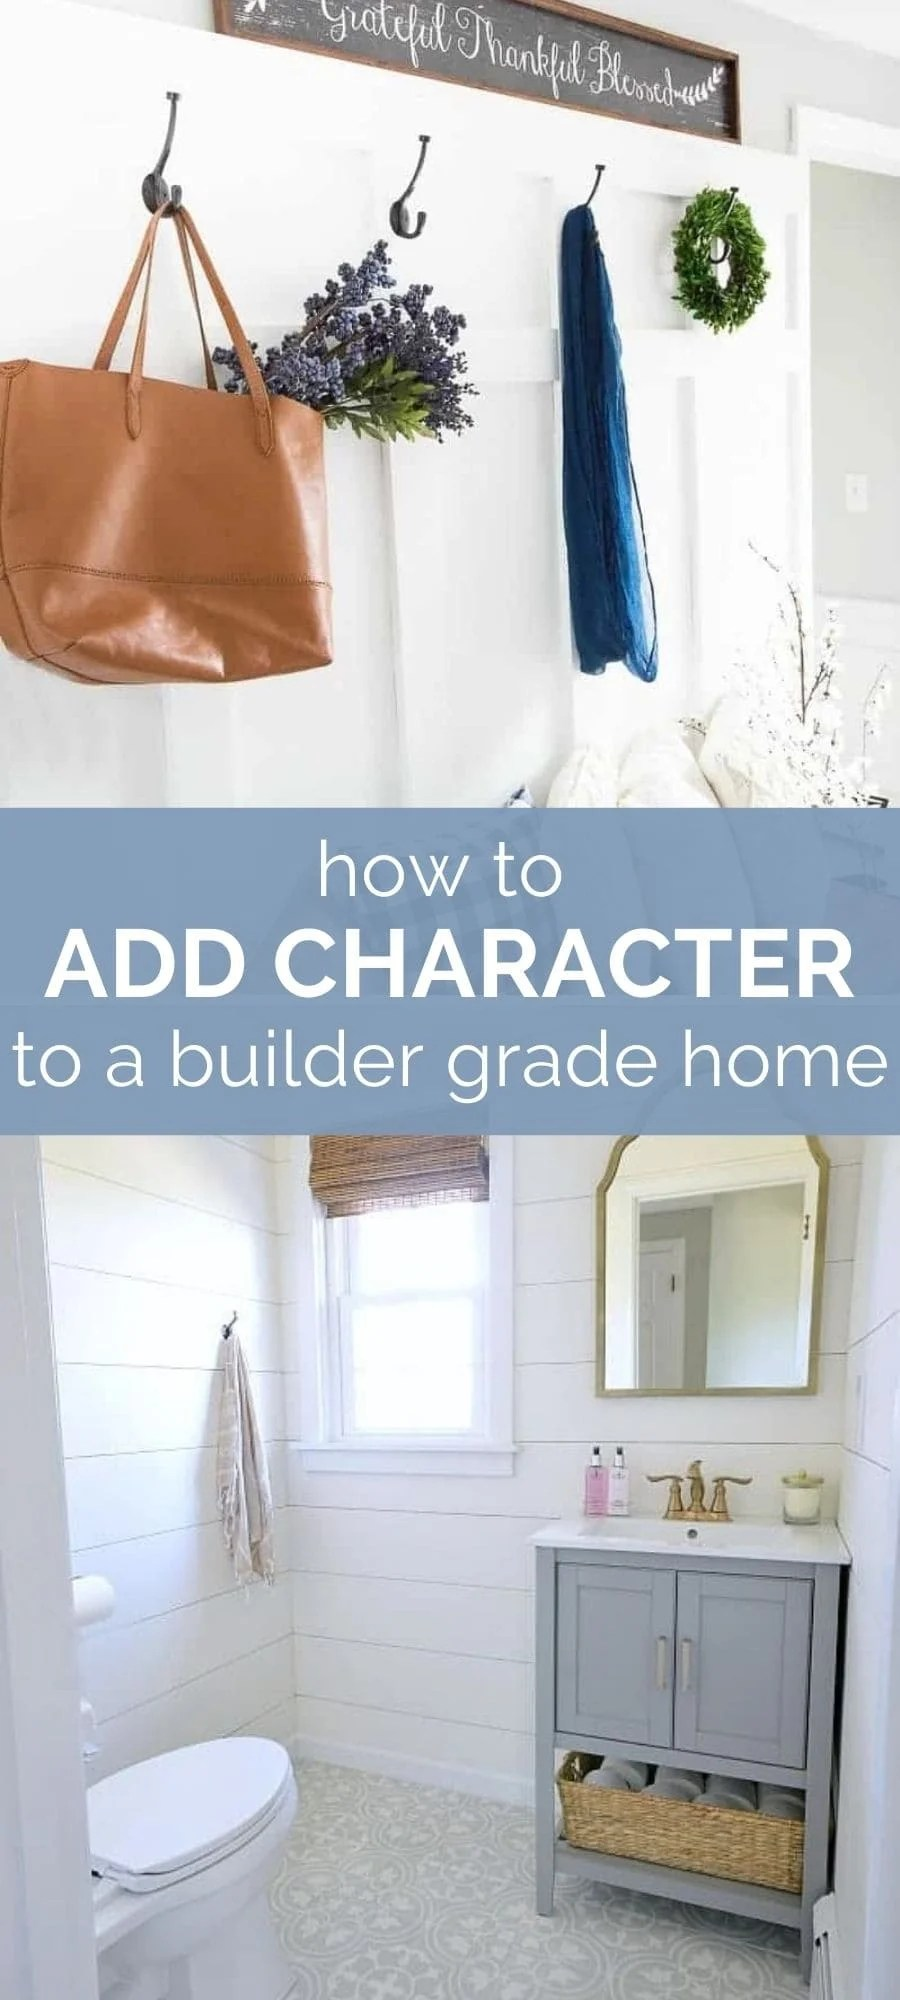 how to add character to a builder grade home